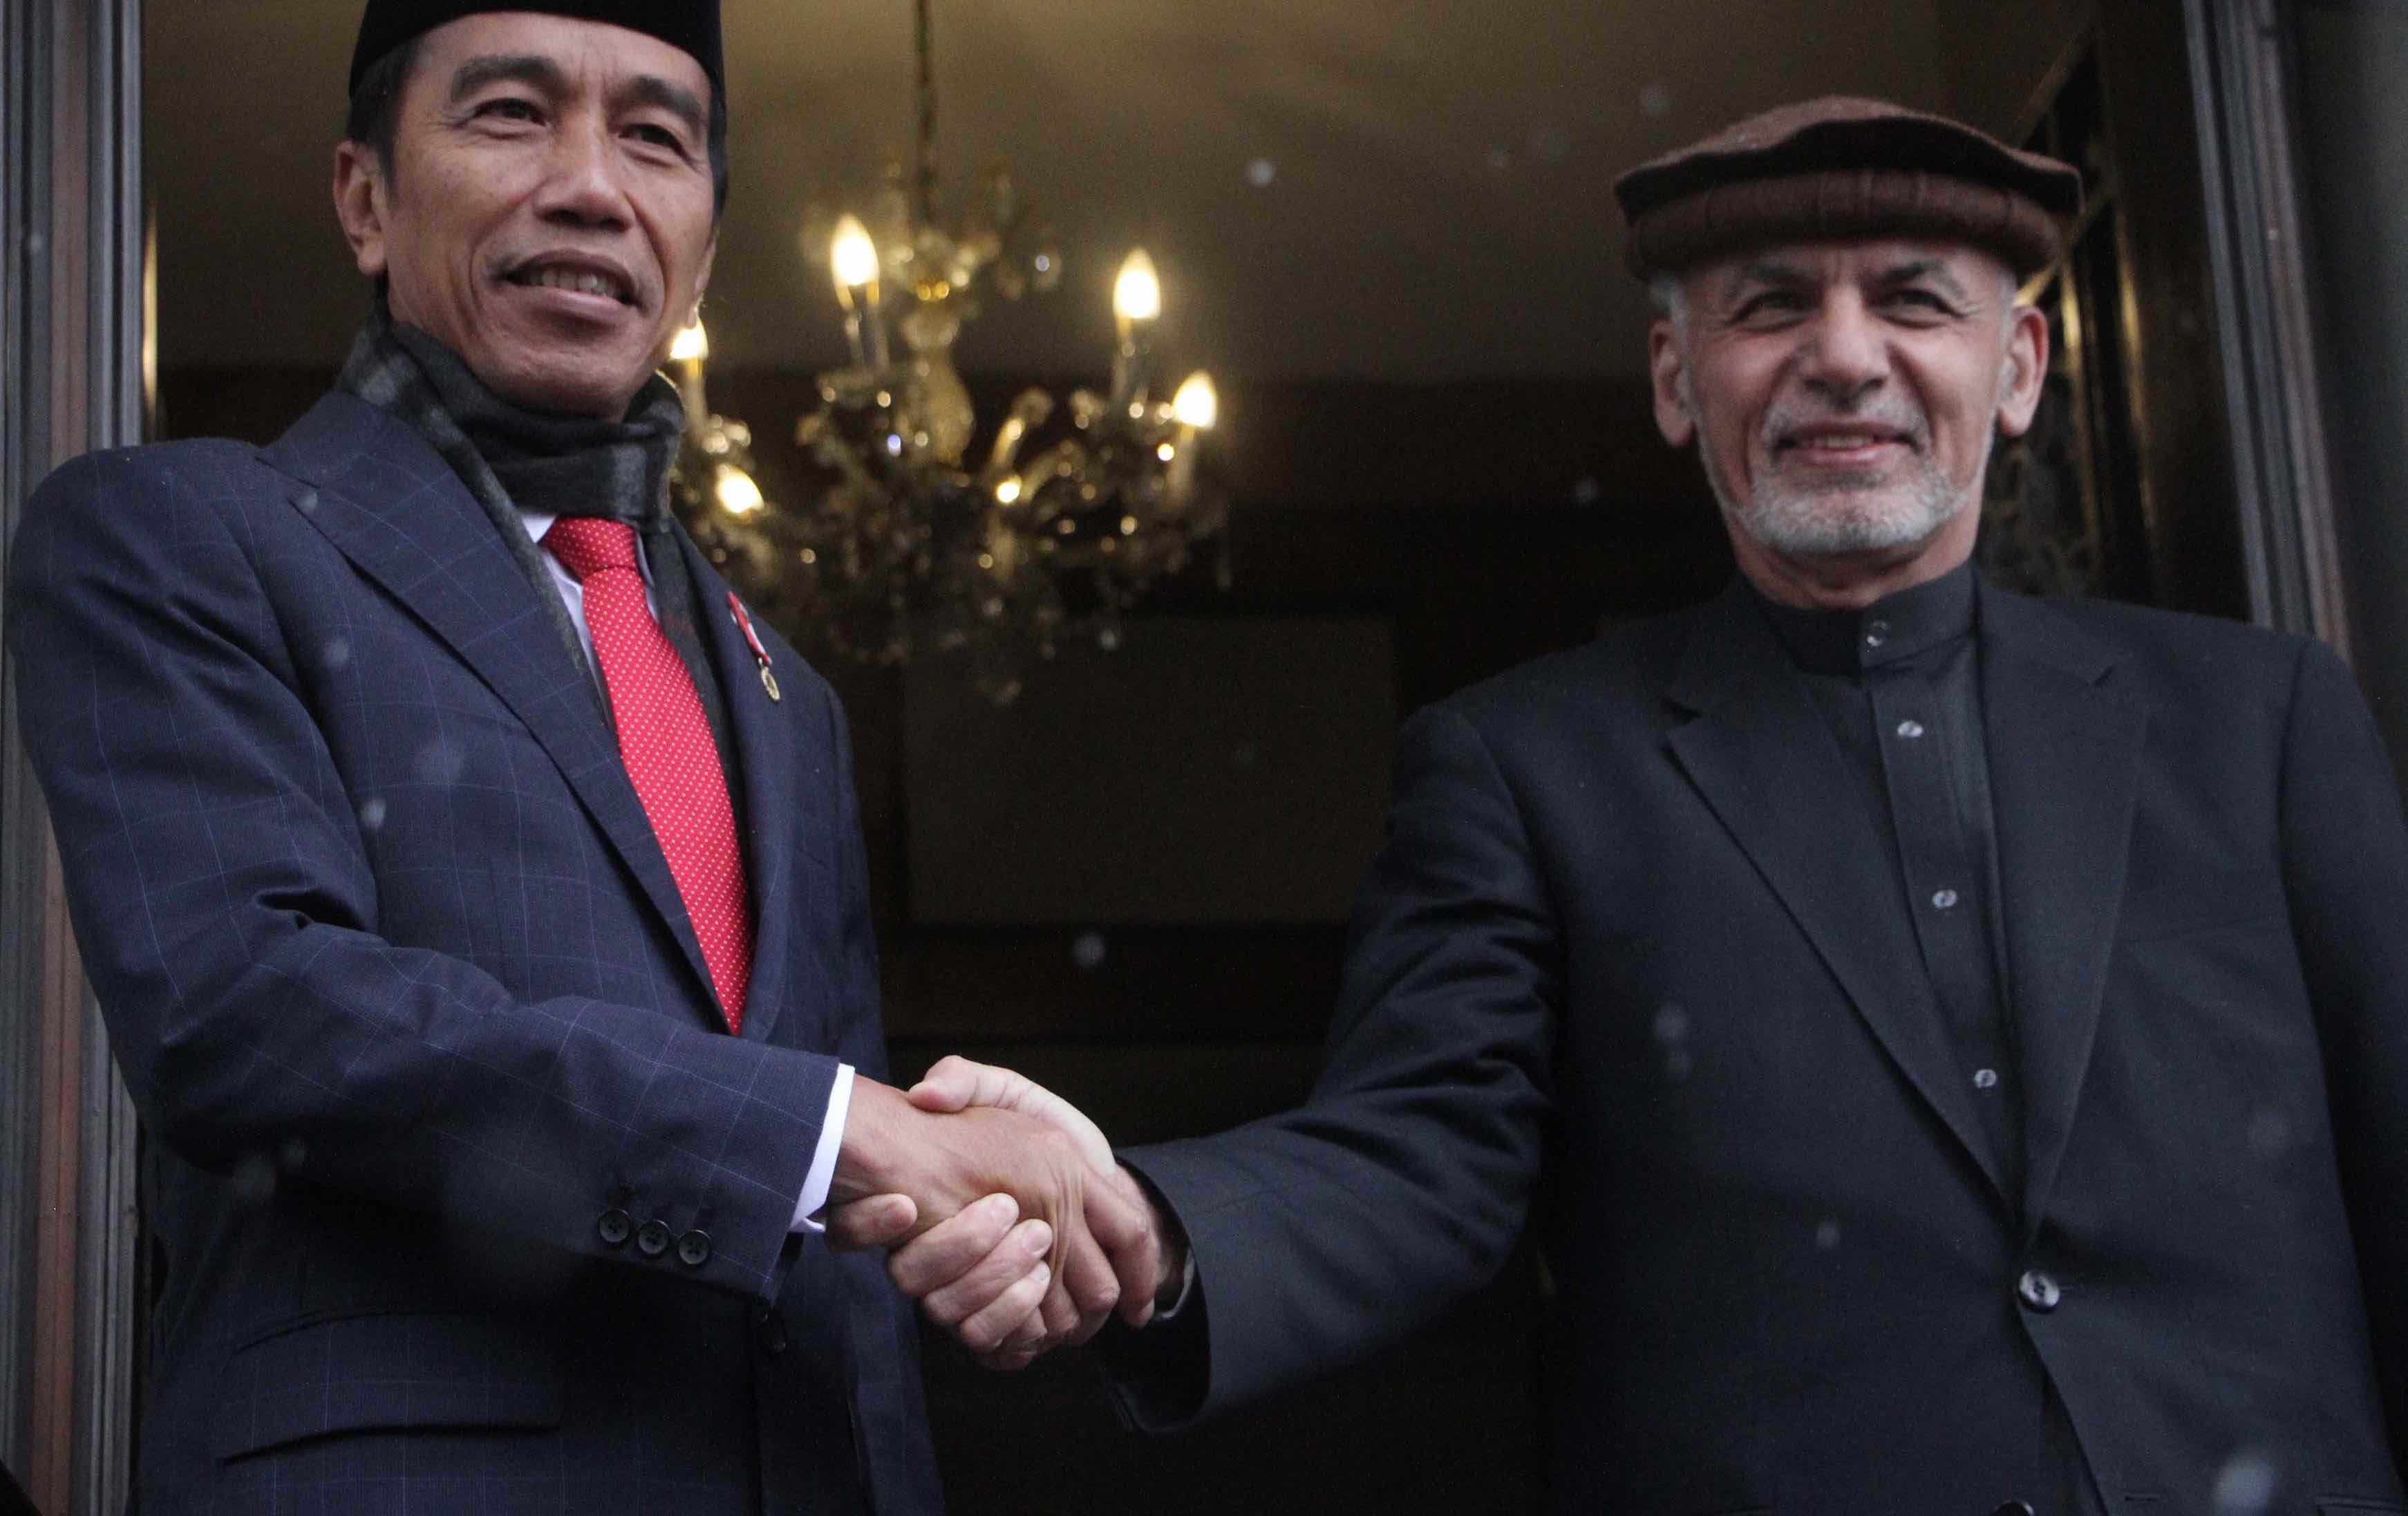 Indonesia's Joko Widodo and Afghan President Ashraf Ghani in Kabul, Afghanistan, in January (Photo: Haroon Sabawoon/Getty)